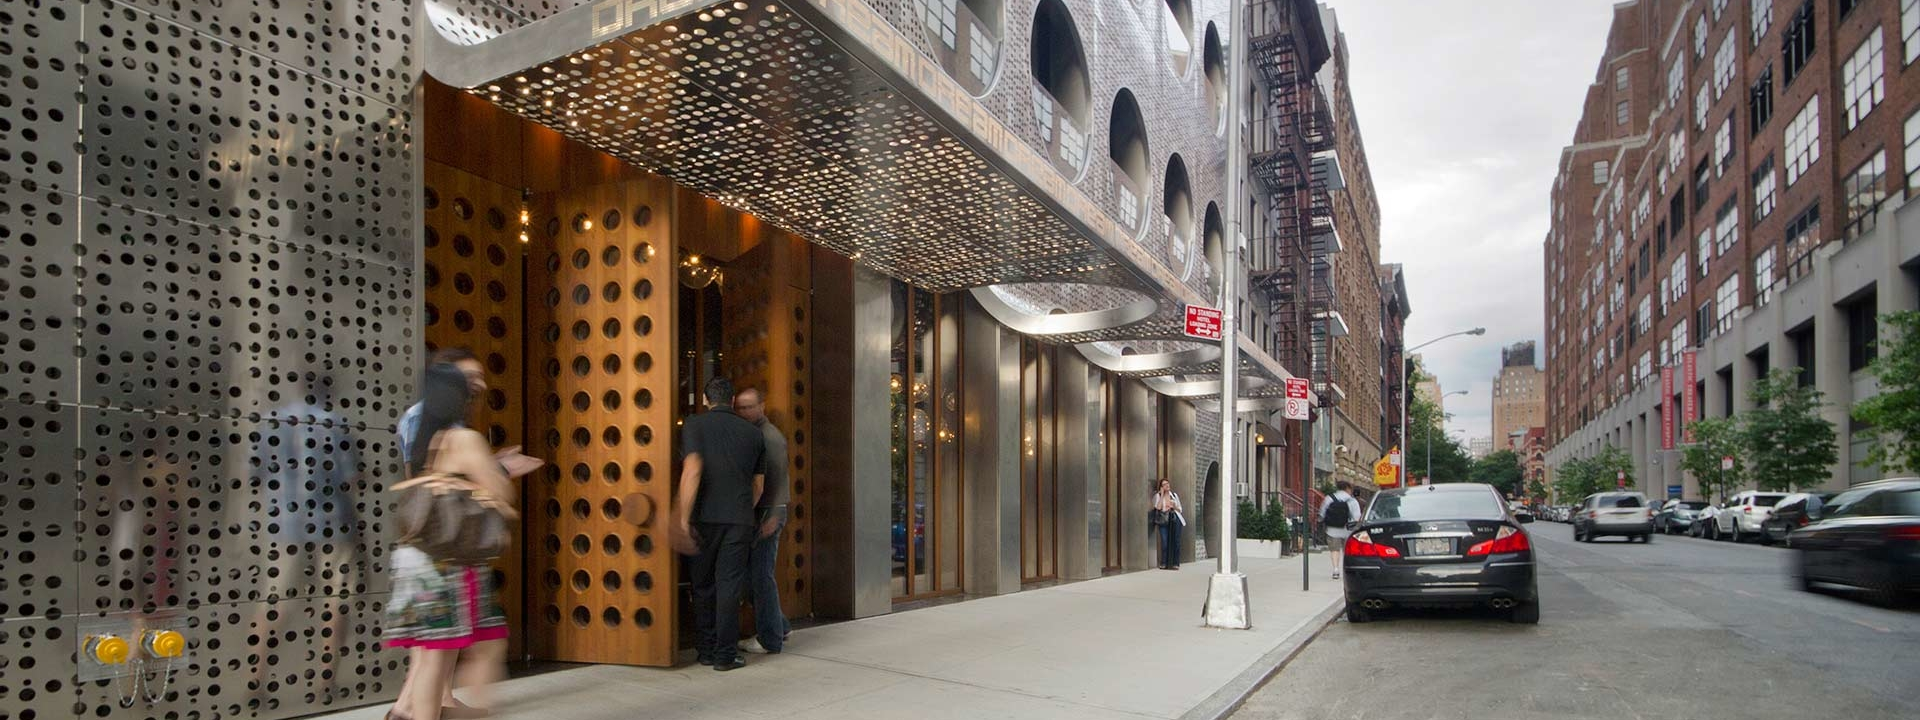 Hotel guests enter the south entrance of the Dream Hotel in NYC